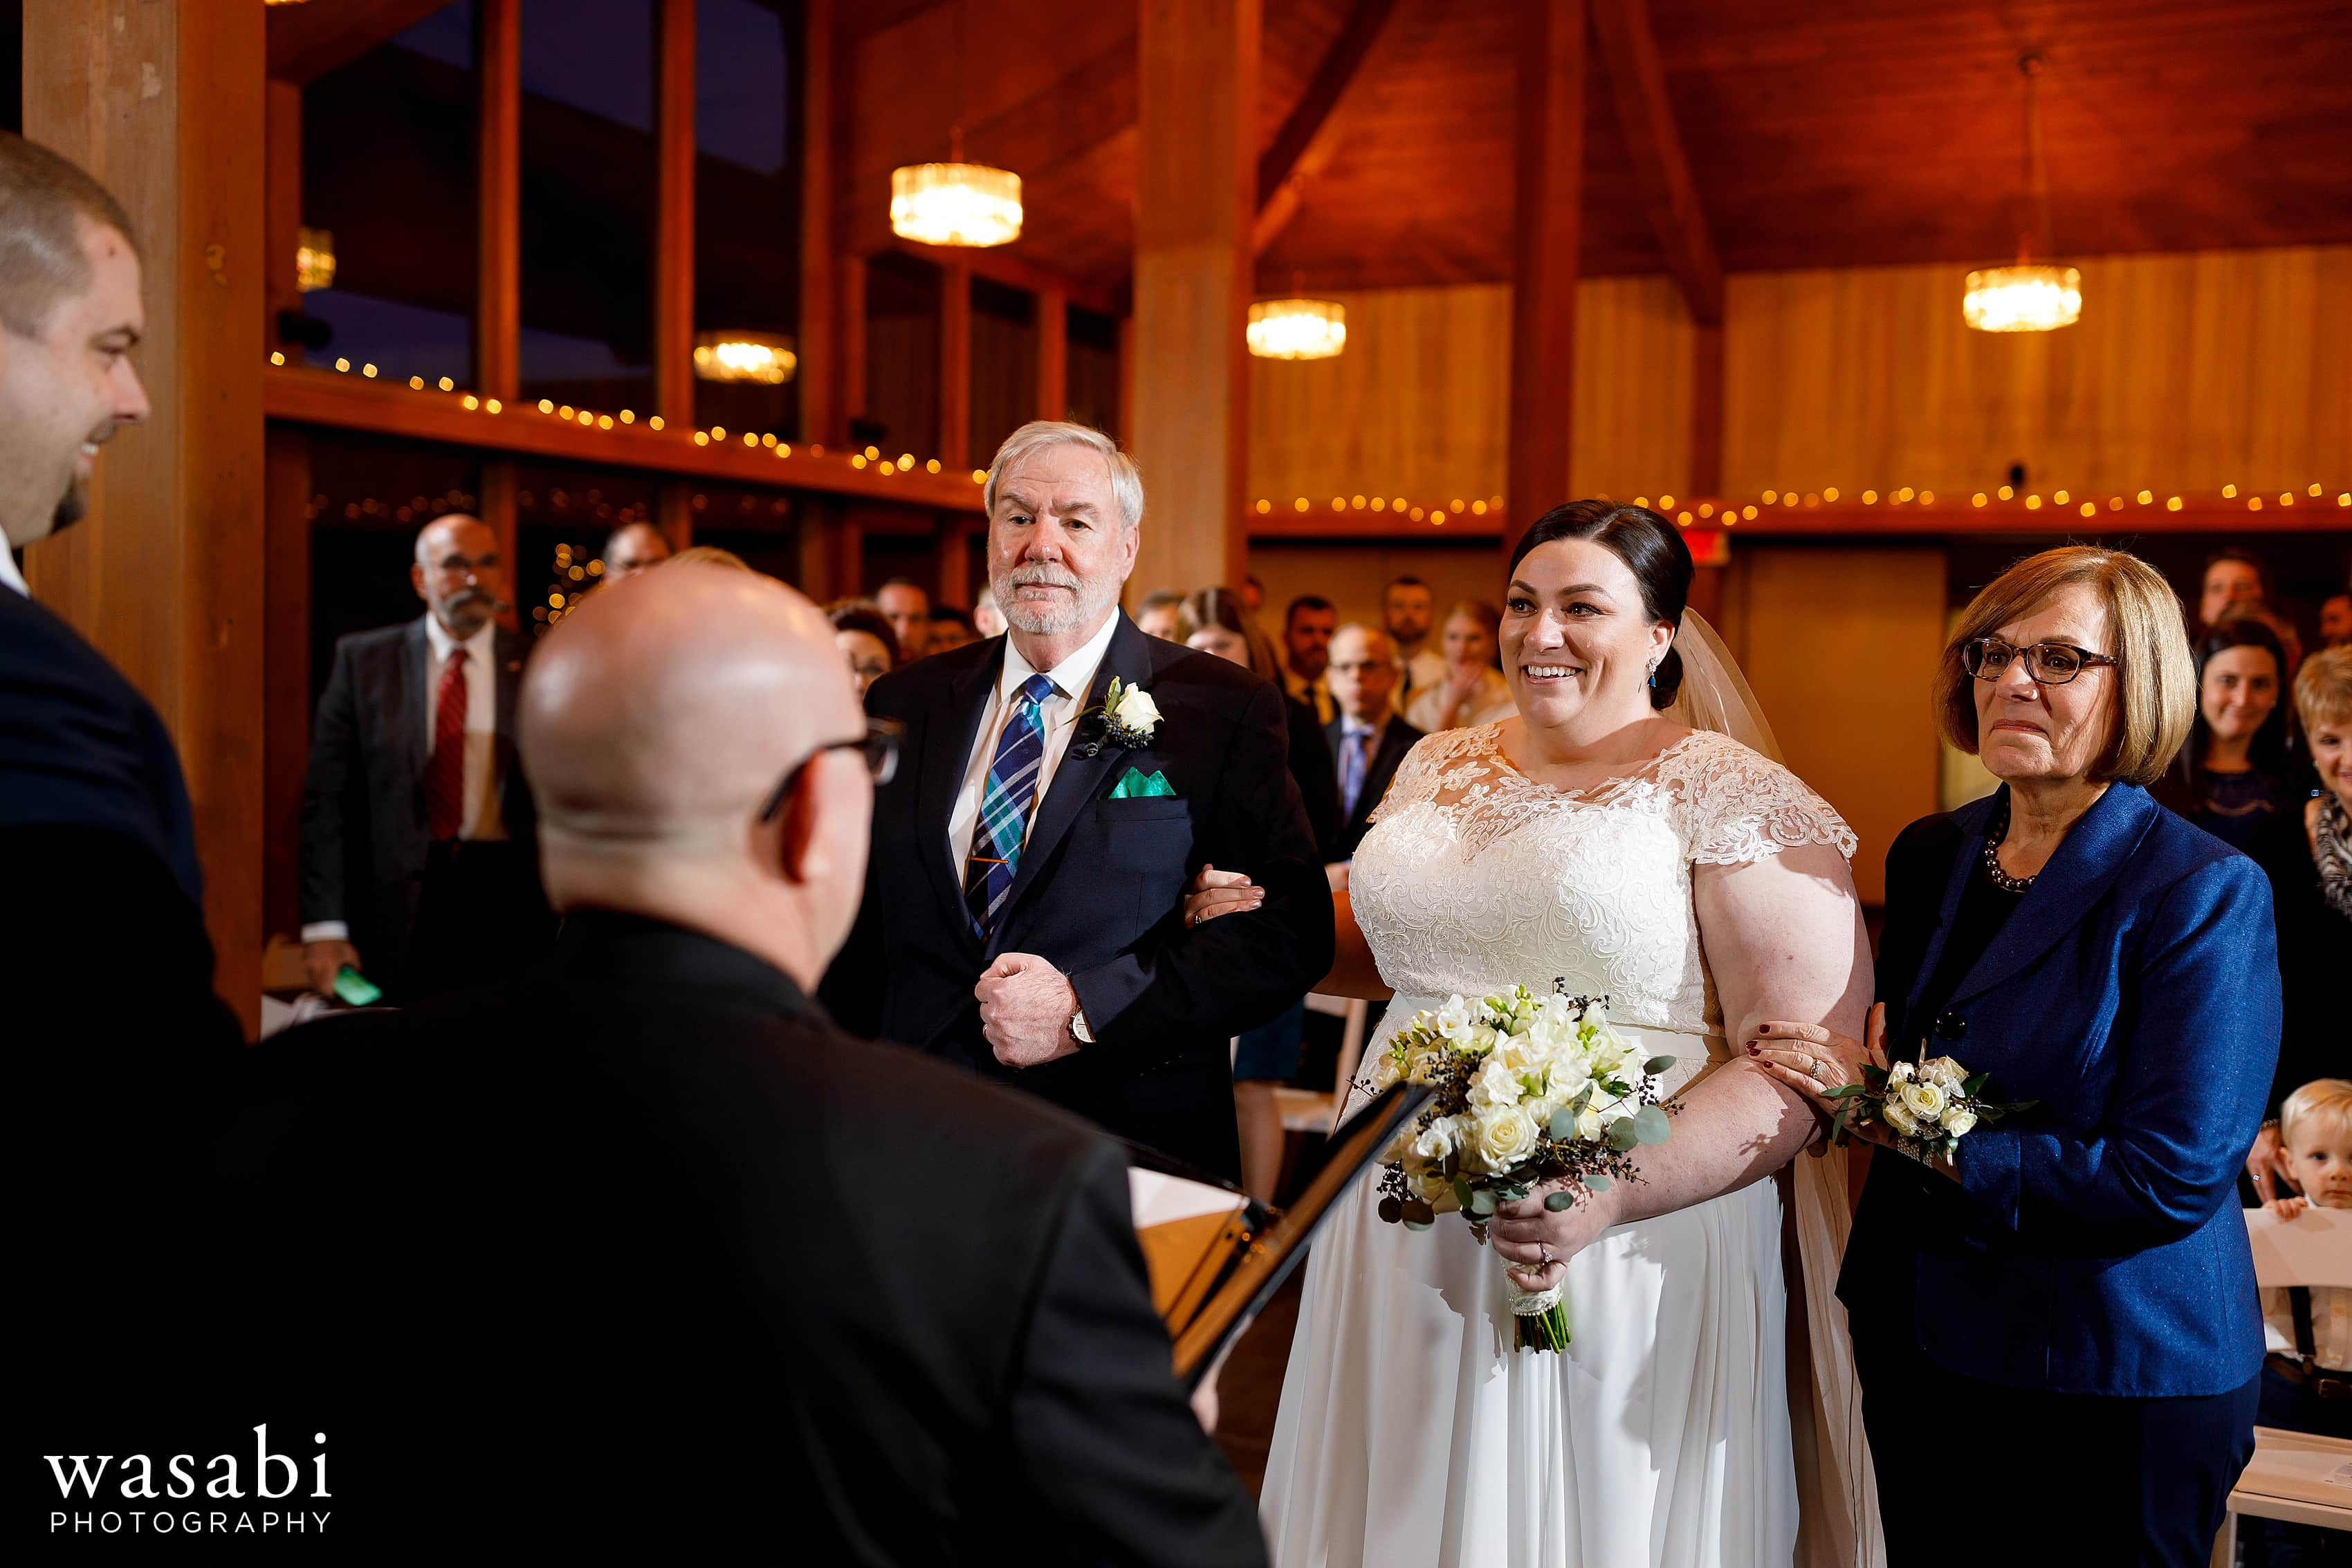 groom bride meet at the alter with her parents during wedding ceremony at Oak Brook Bath and Tennis Club